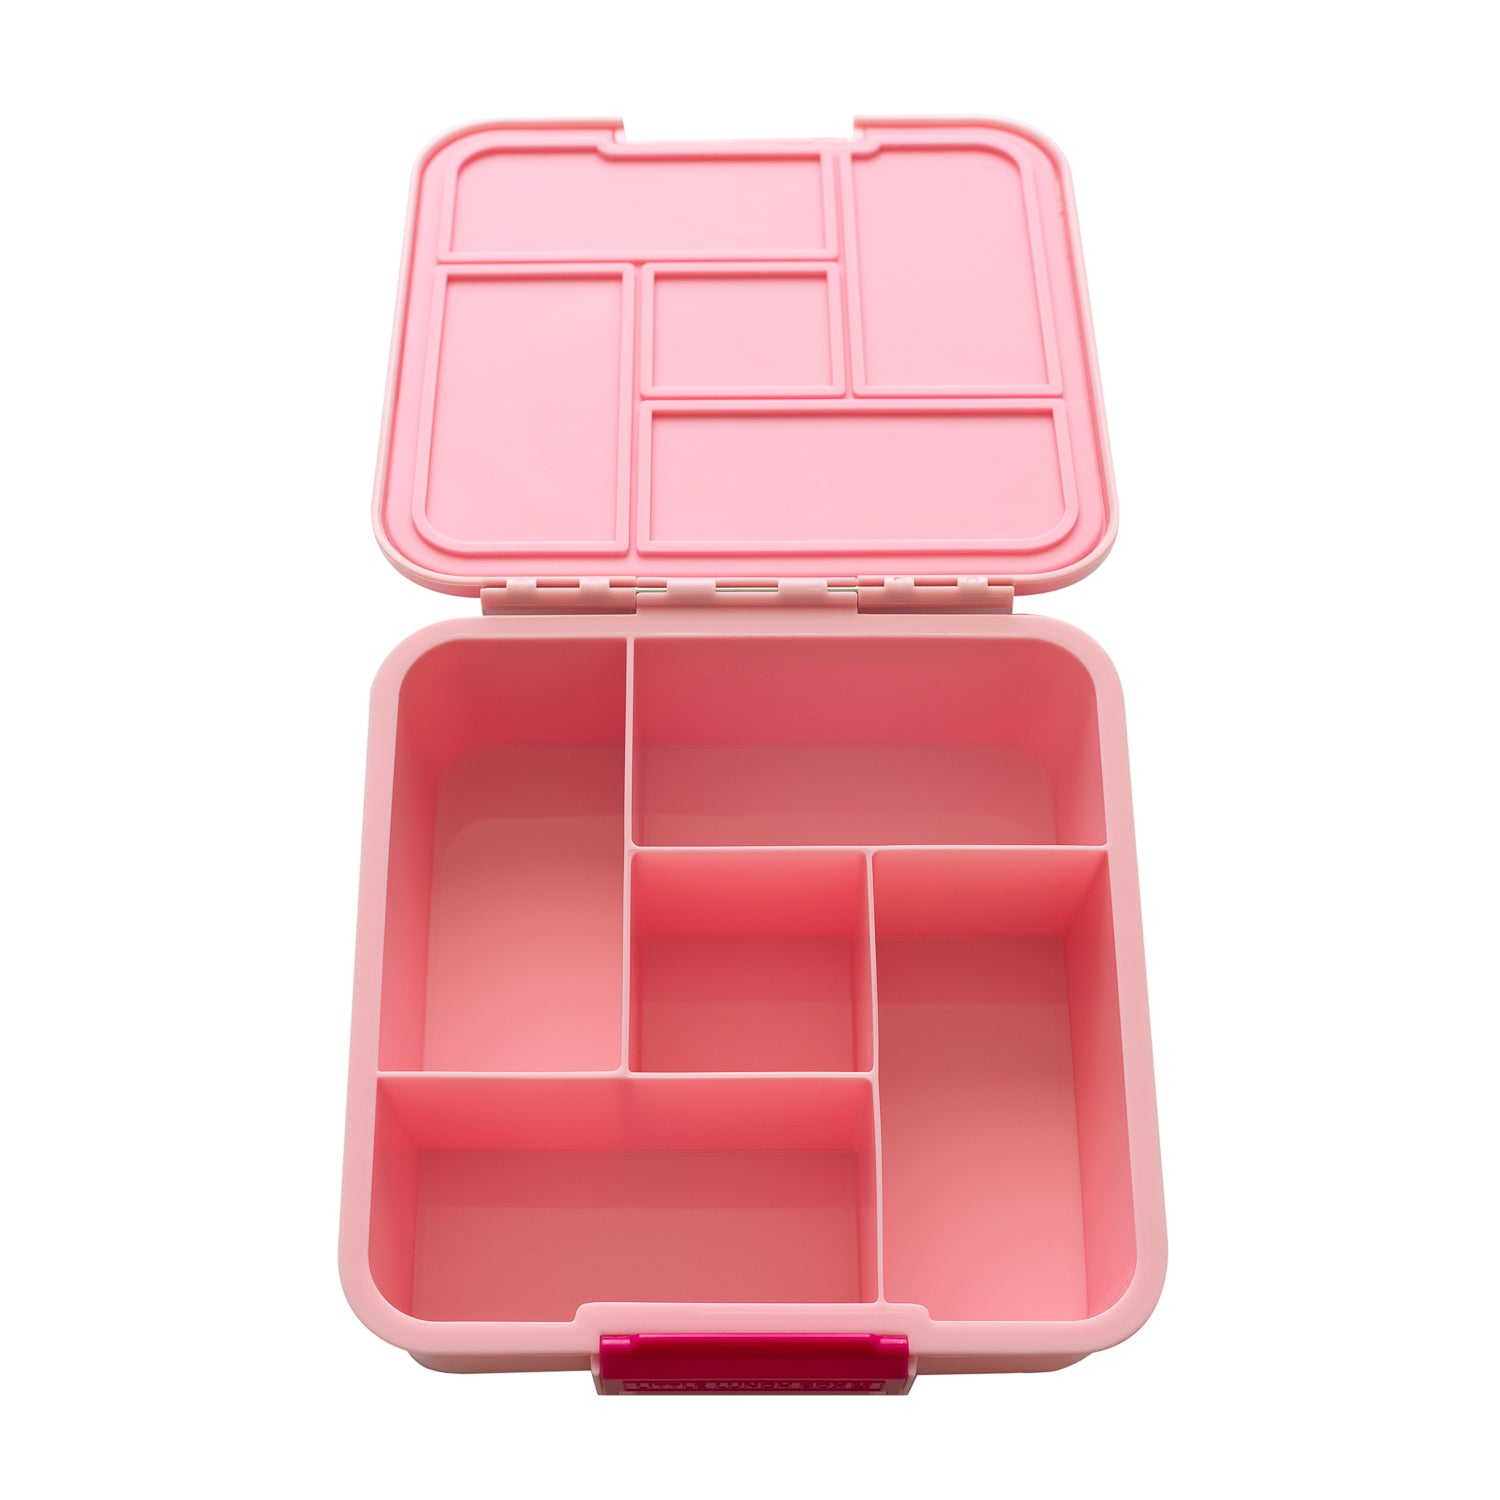 Bento Five - Kitty Lunch Box